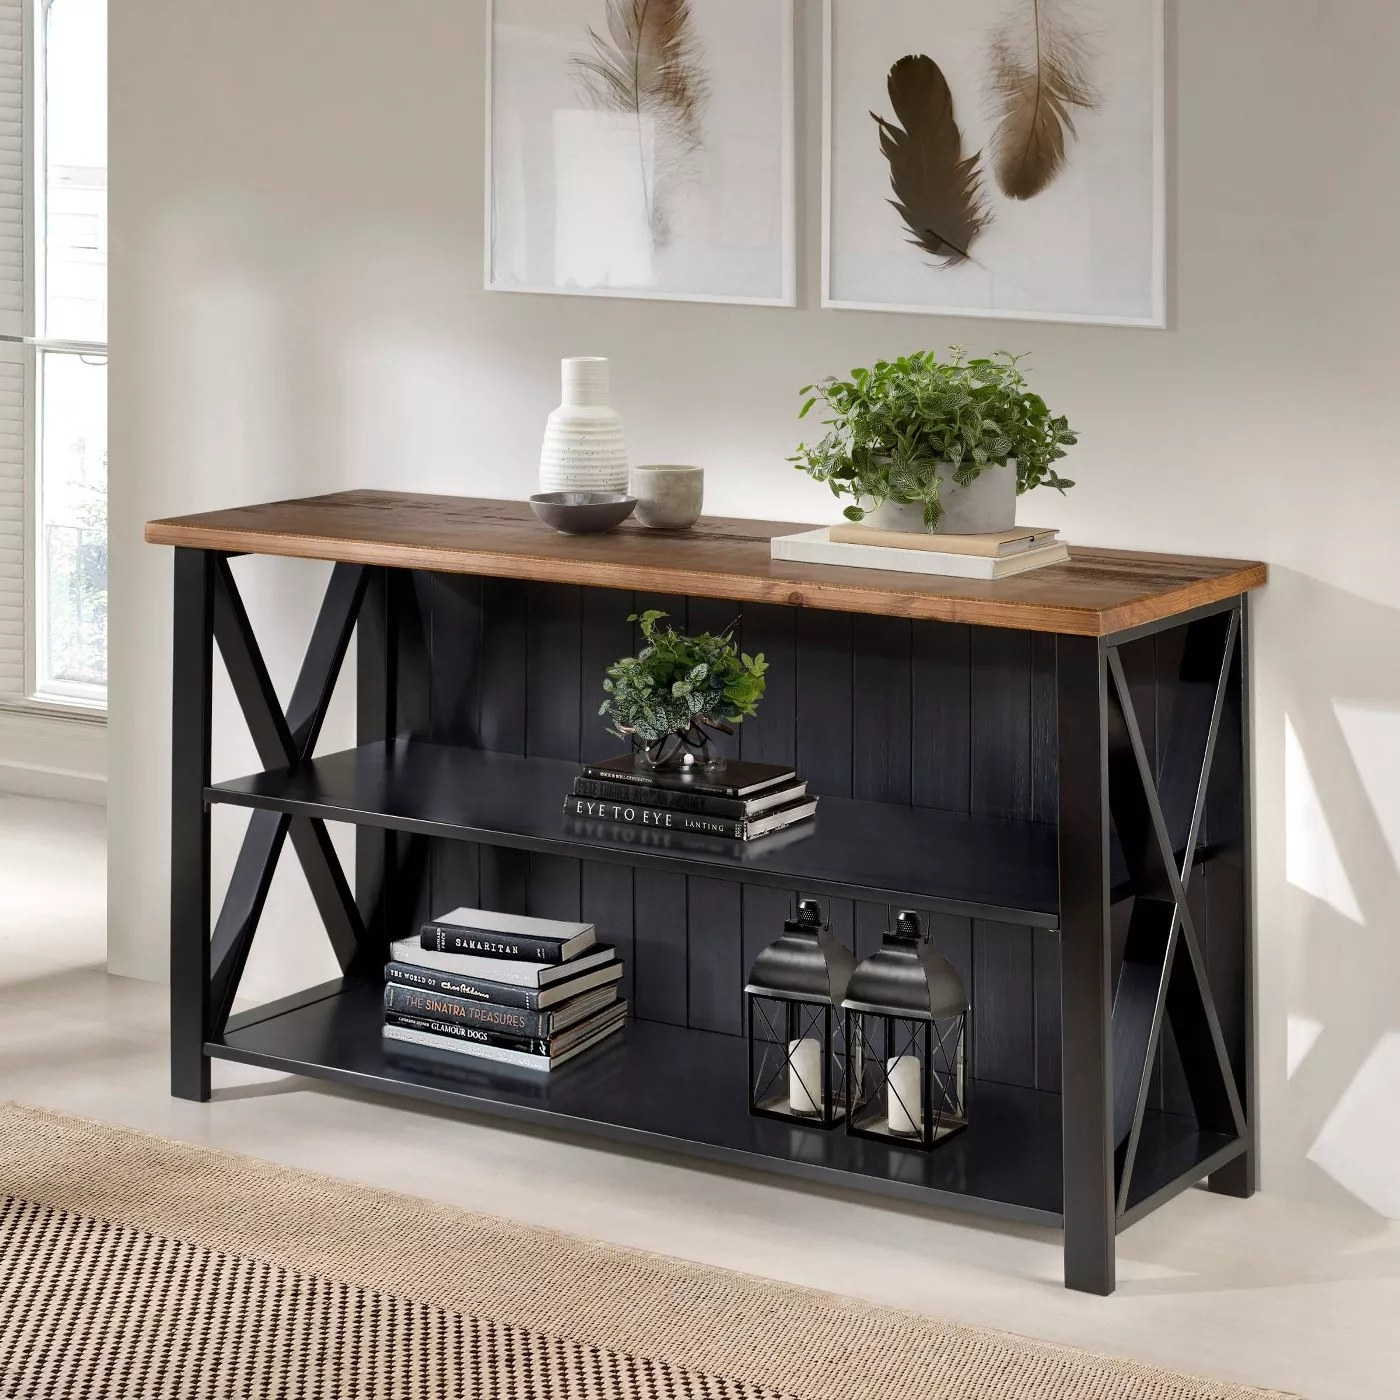 A black farmhouse console with a wood countertop and X-framed sides